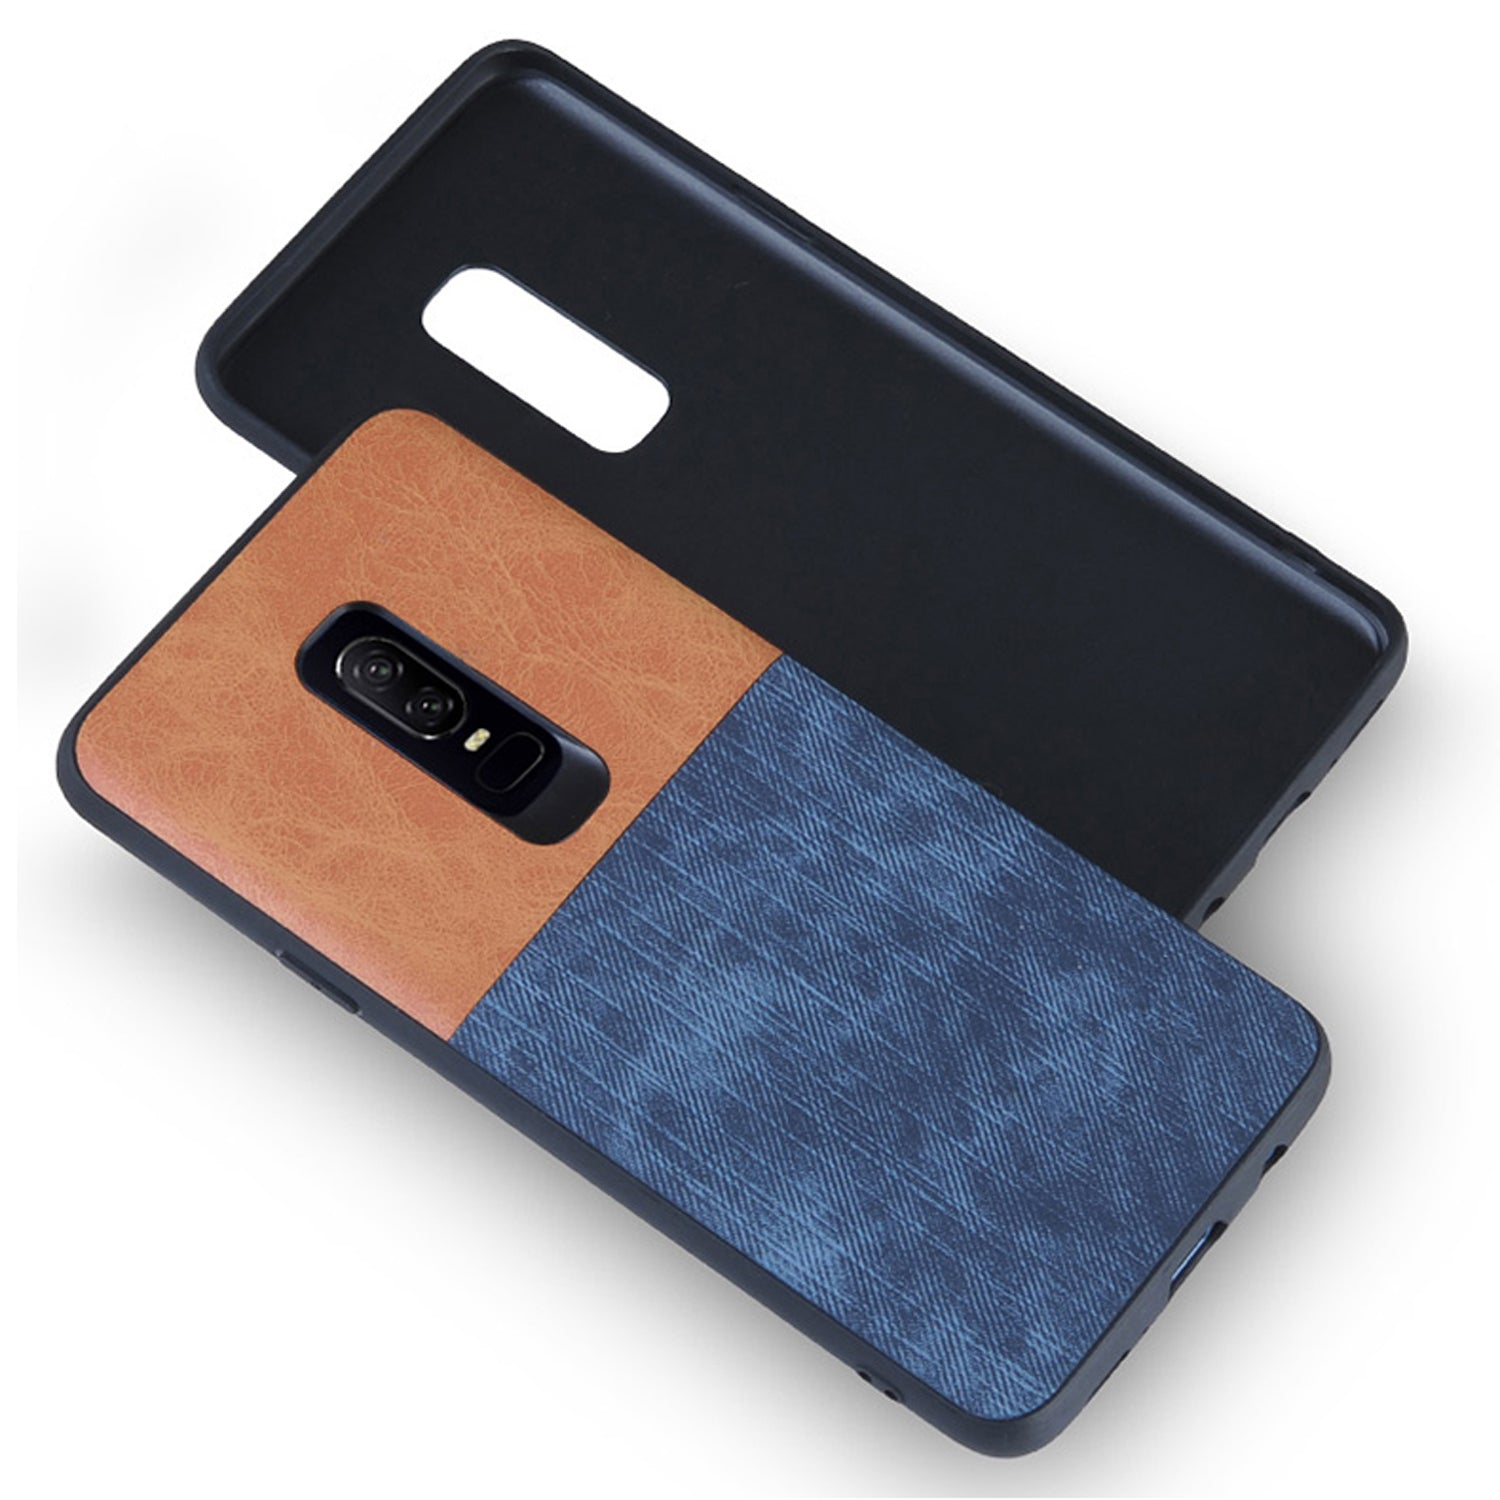 Soft Denim & Leather Hybrid Protective Back Case Cover for OnePlus 6/One Plus 6 - Brown/Blue - Mobizang